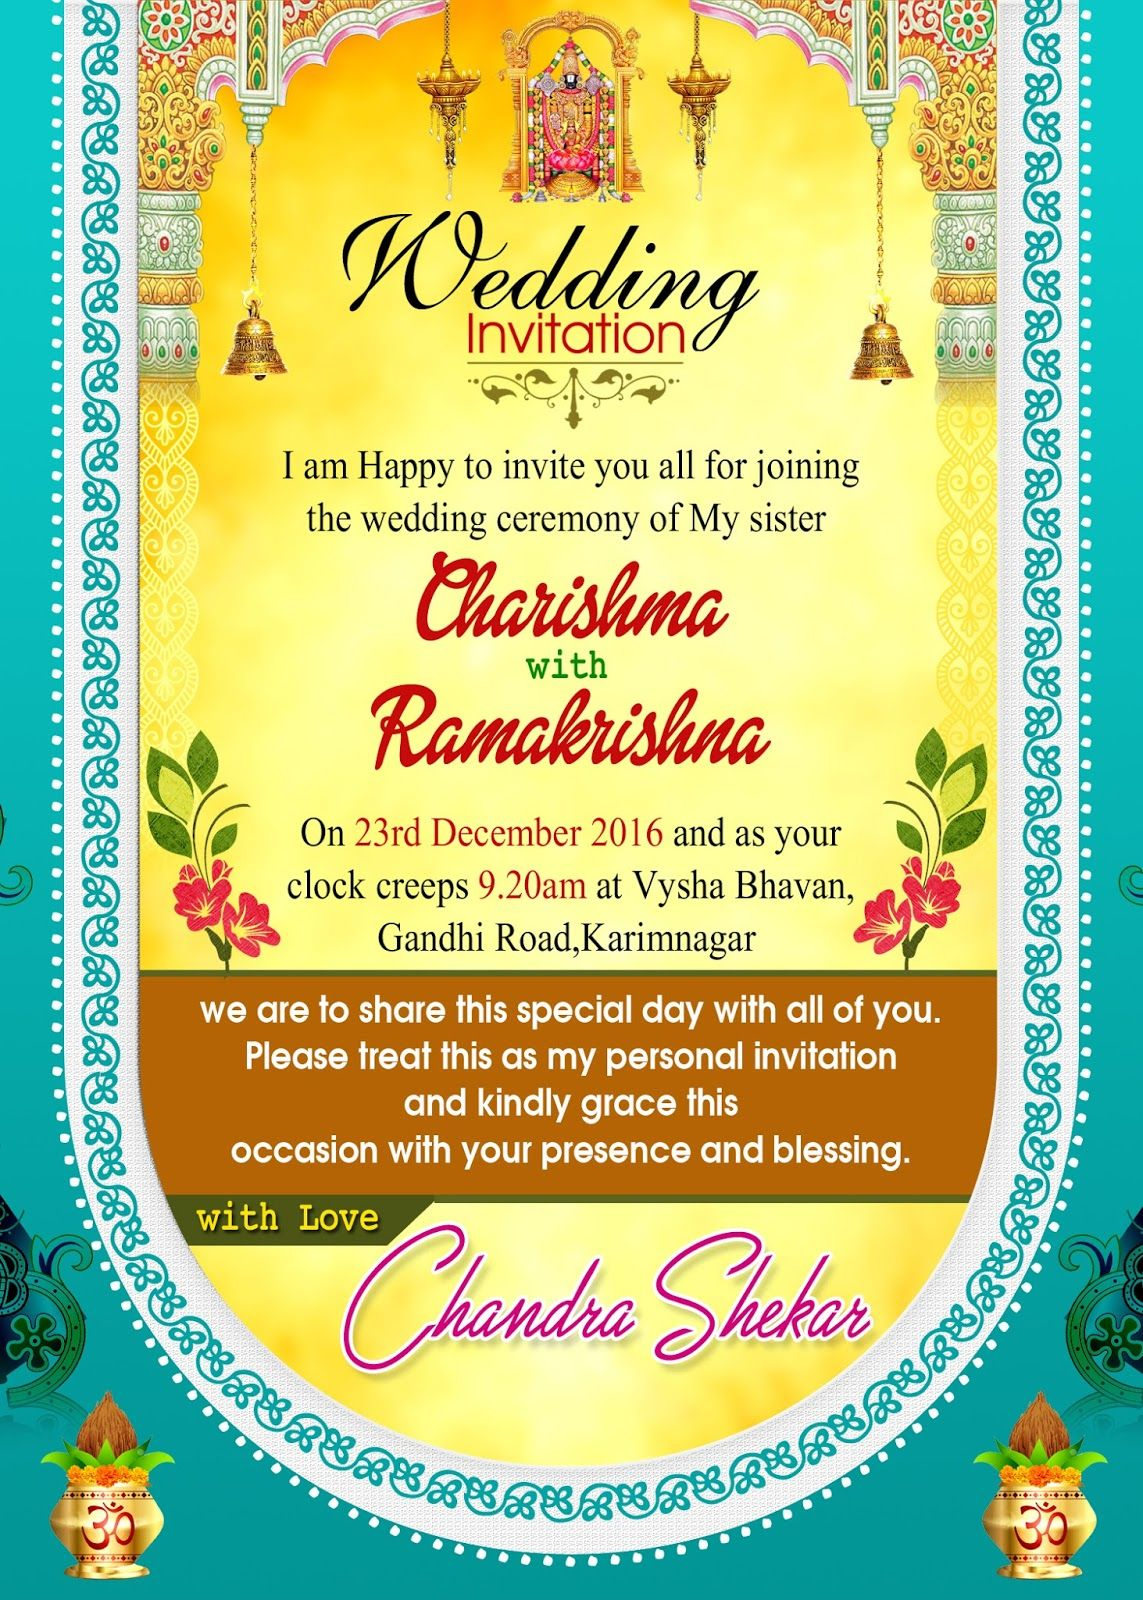 Wedding Invitation Card Psd File Free Download Wedding Invitation Card Psd Hindu Wedding Invitations Indian Wedding Invitations Indian Wedding Invitation Cards